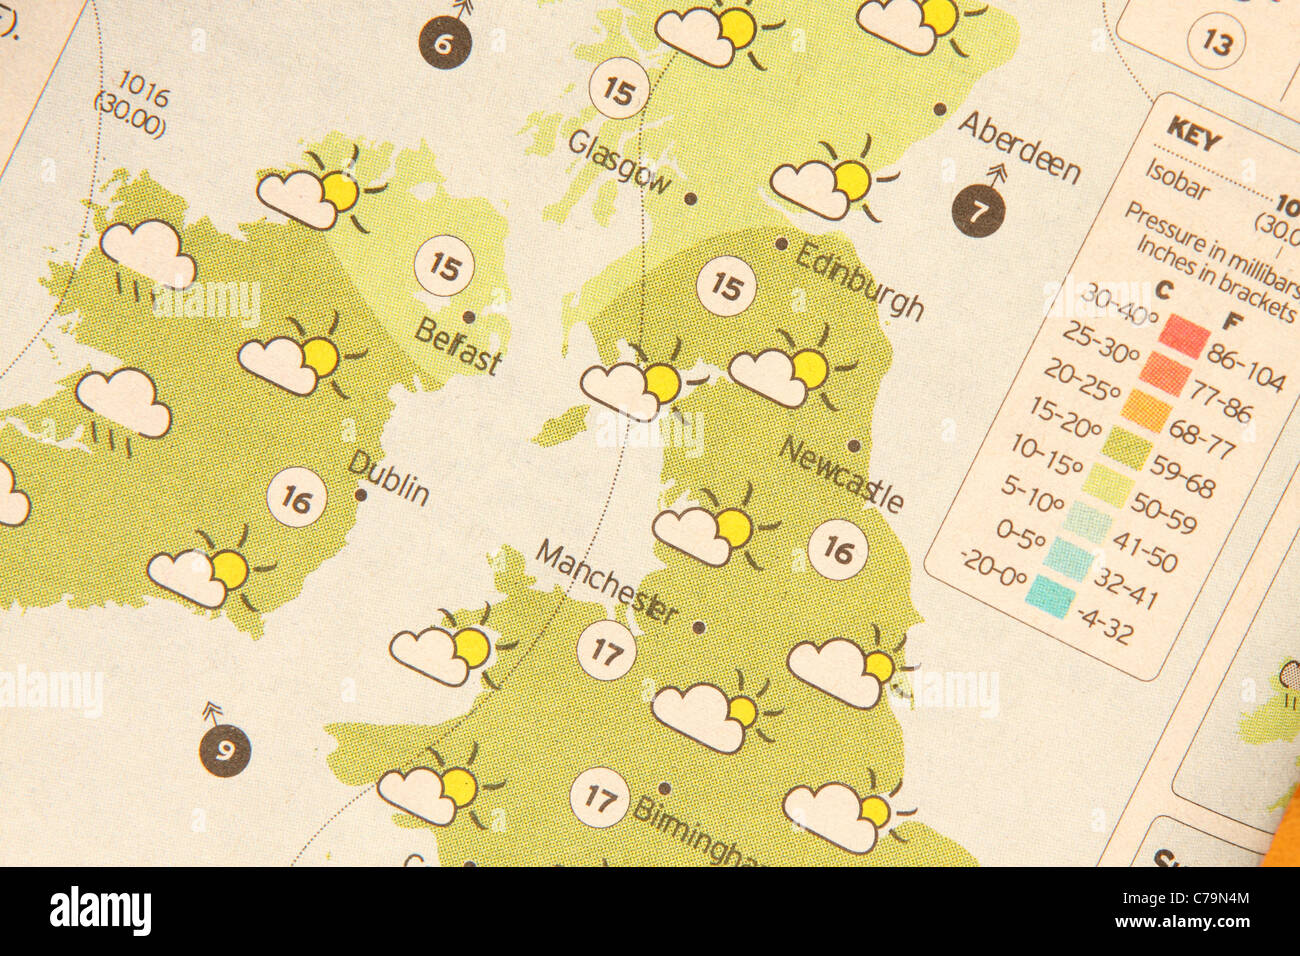 Weather forecast map in a newspaper - Stock Image